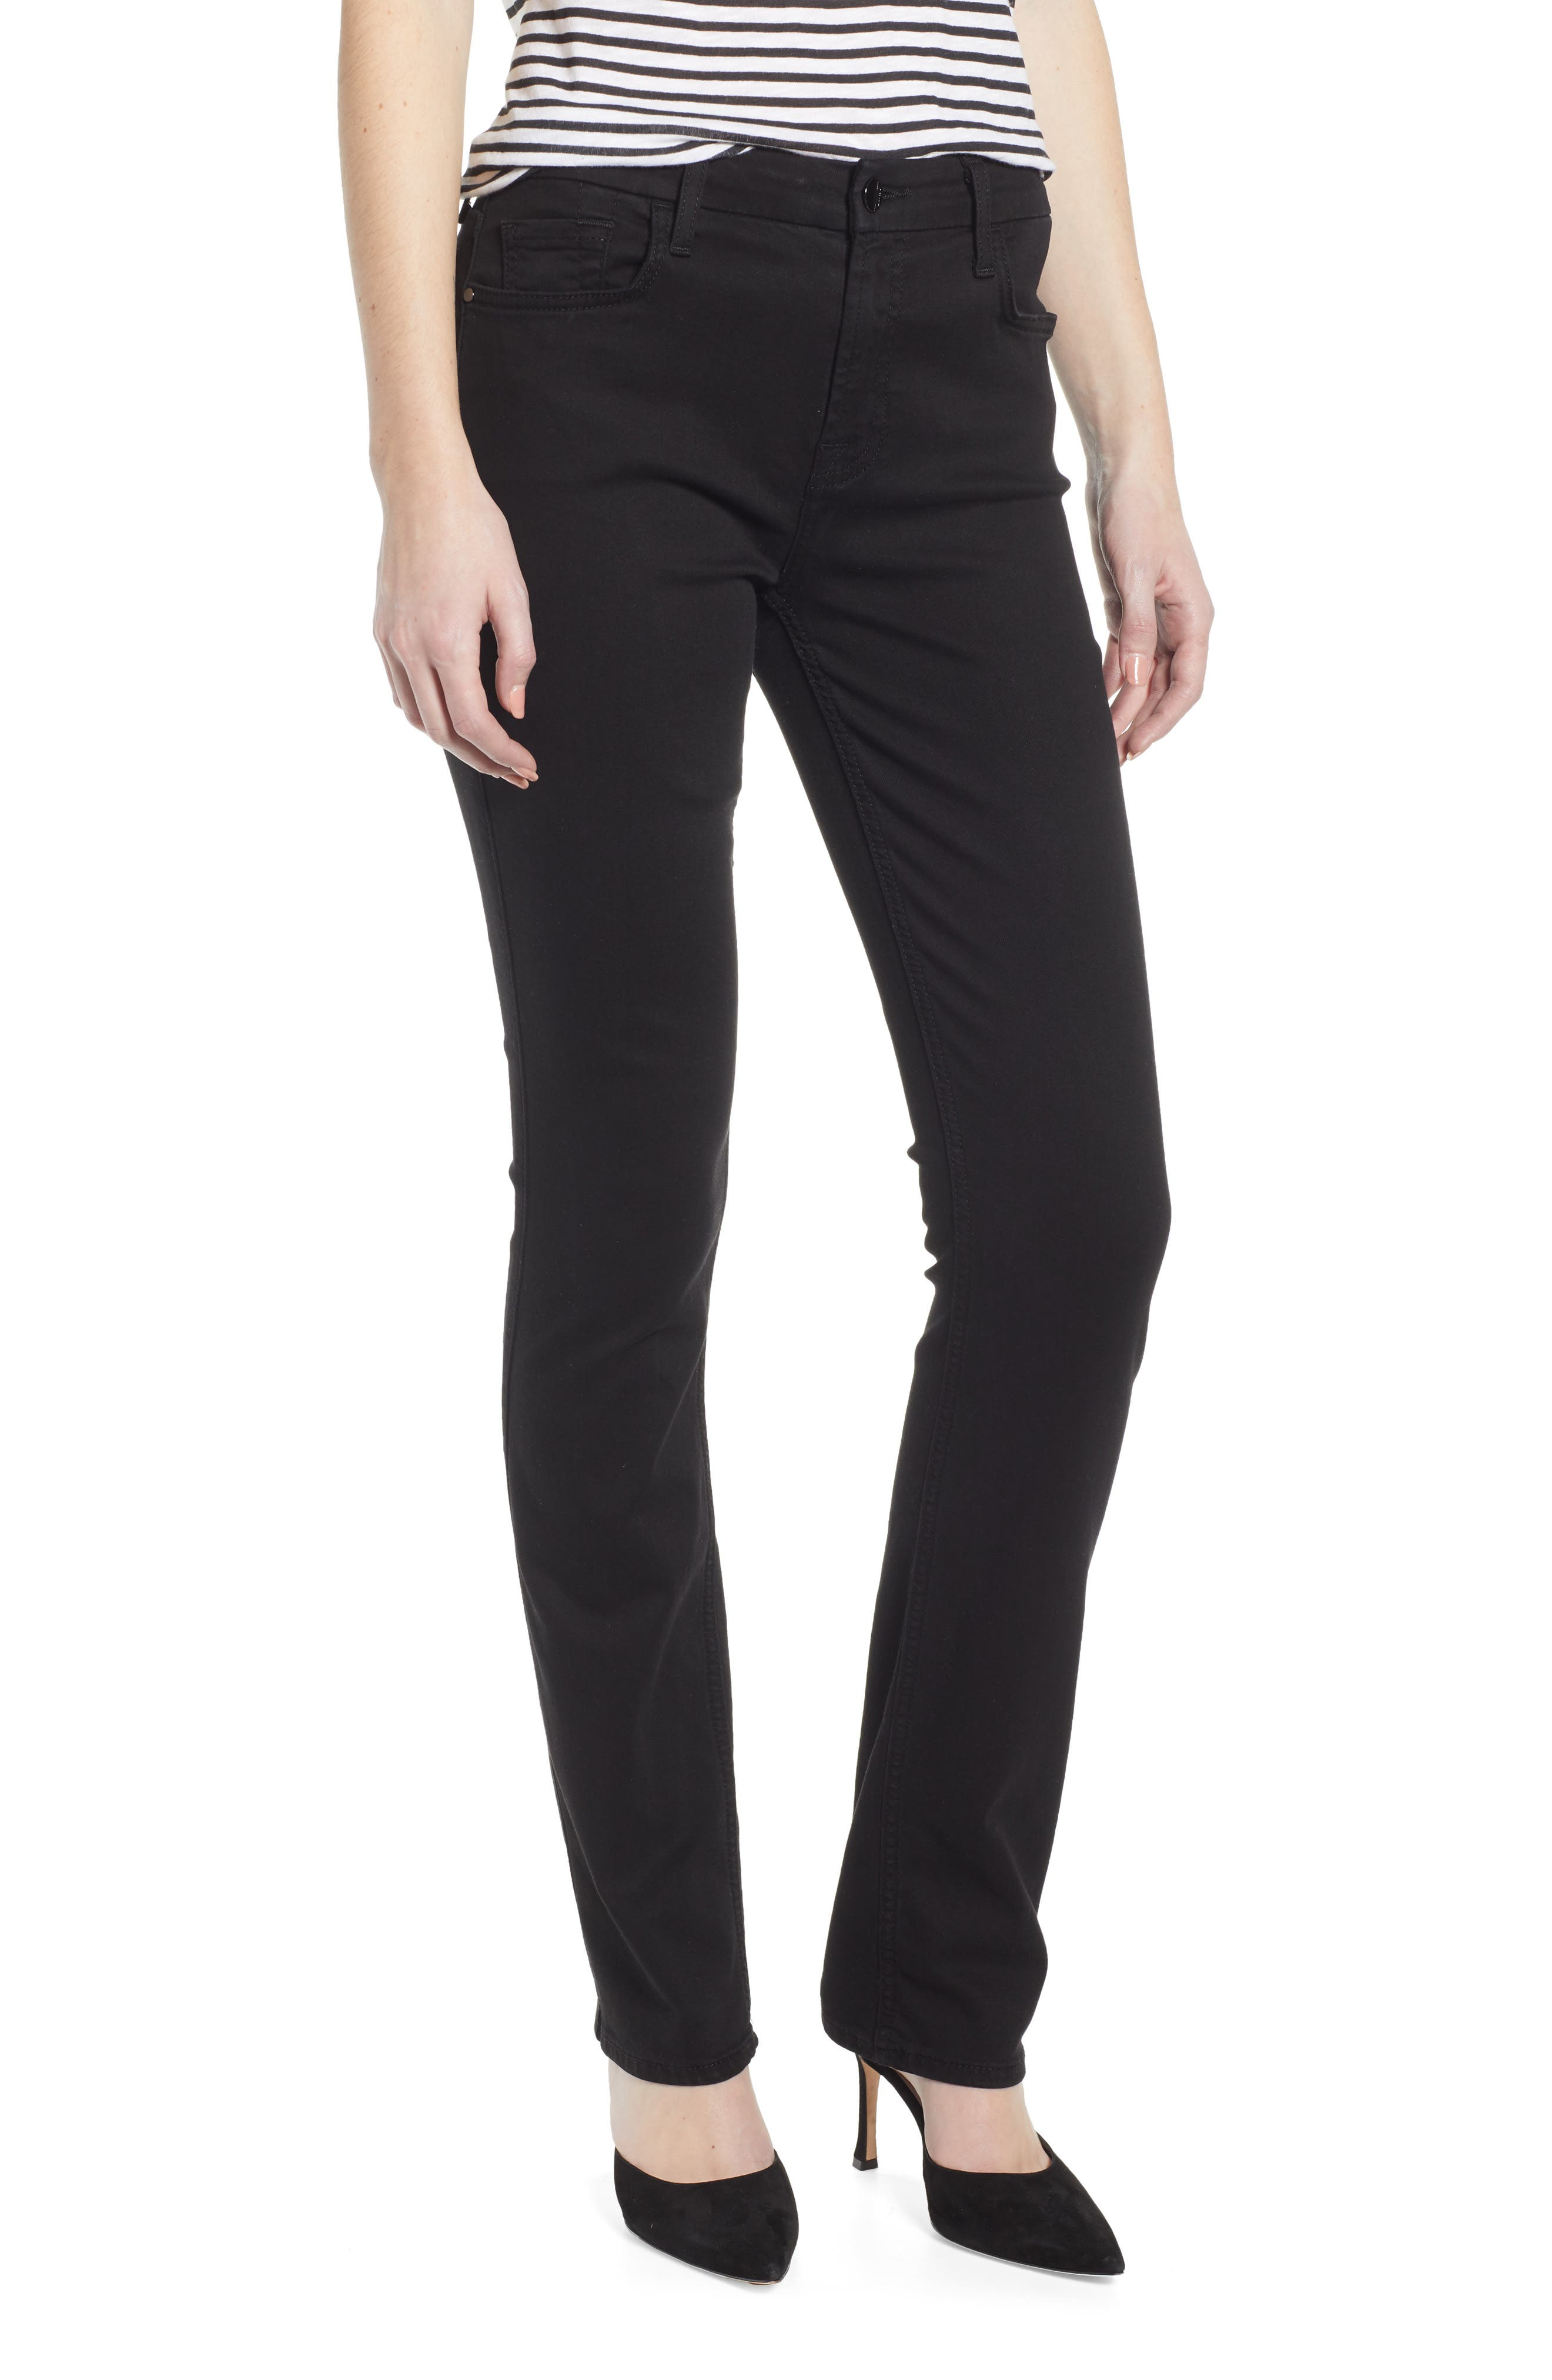 JEN7 BY 7 FOR ALL MANKIND Stretch Slim Straight Leg Jeans, Main, color, CLASSIC BLACK NOIR